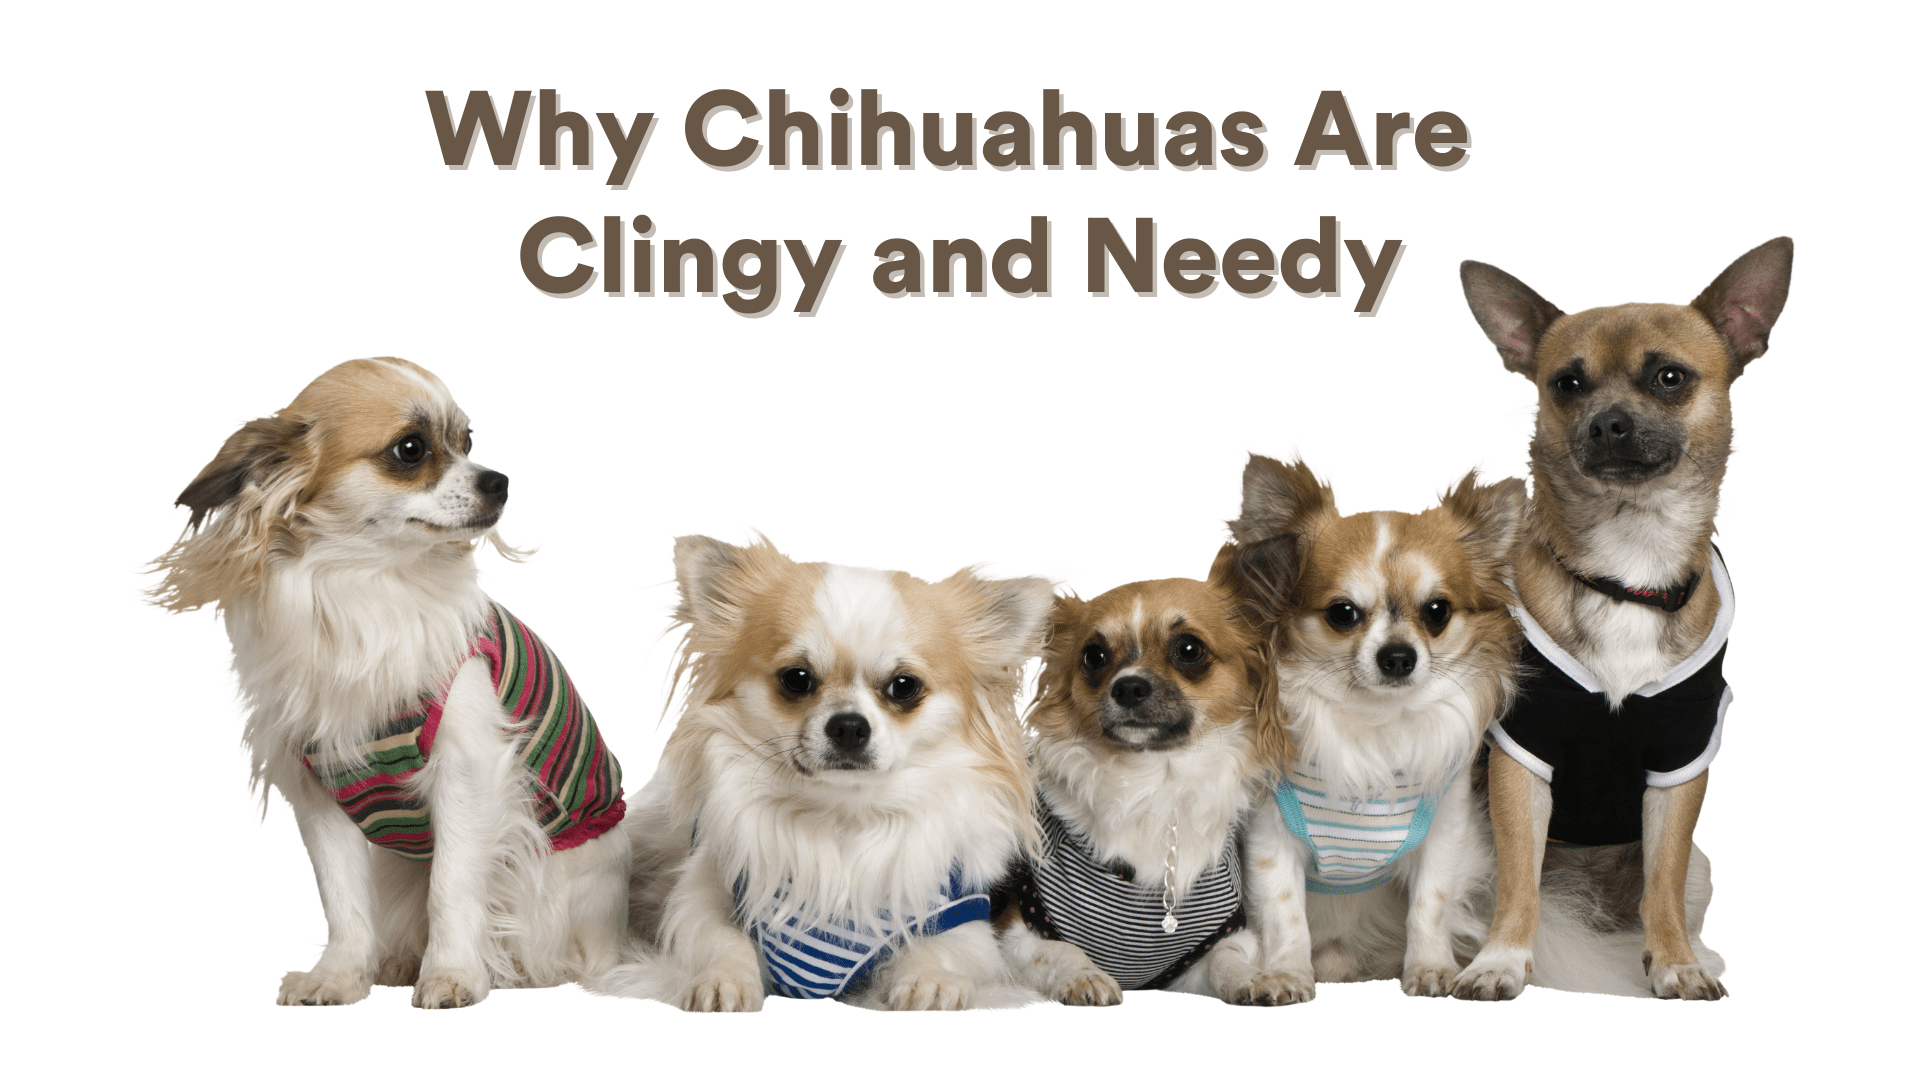 Why are Chihuahuas so Clingy and Needy?